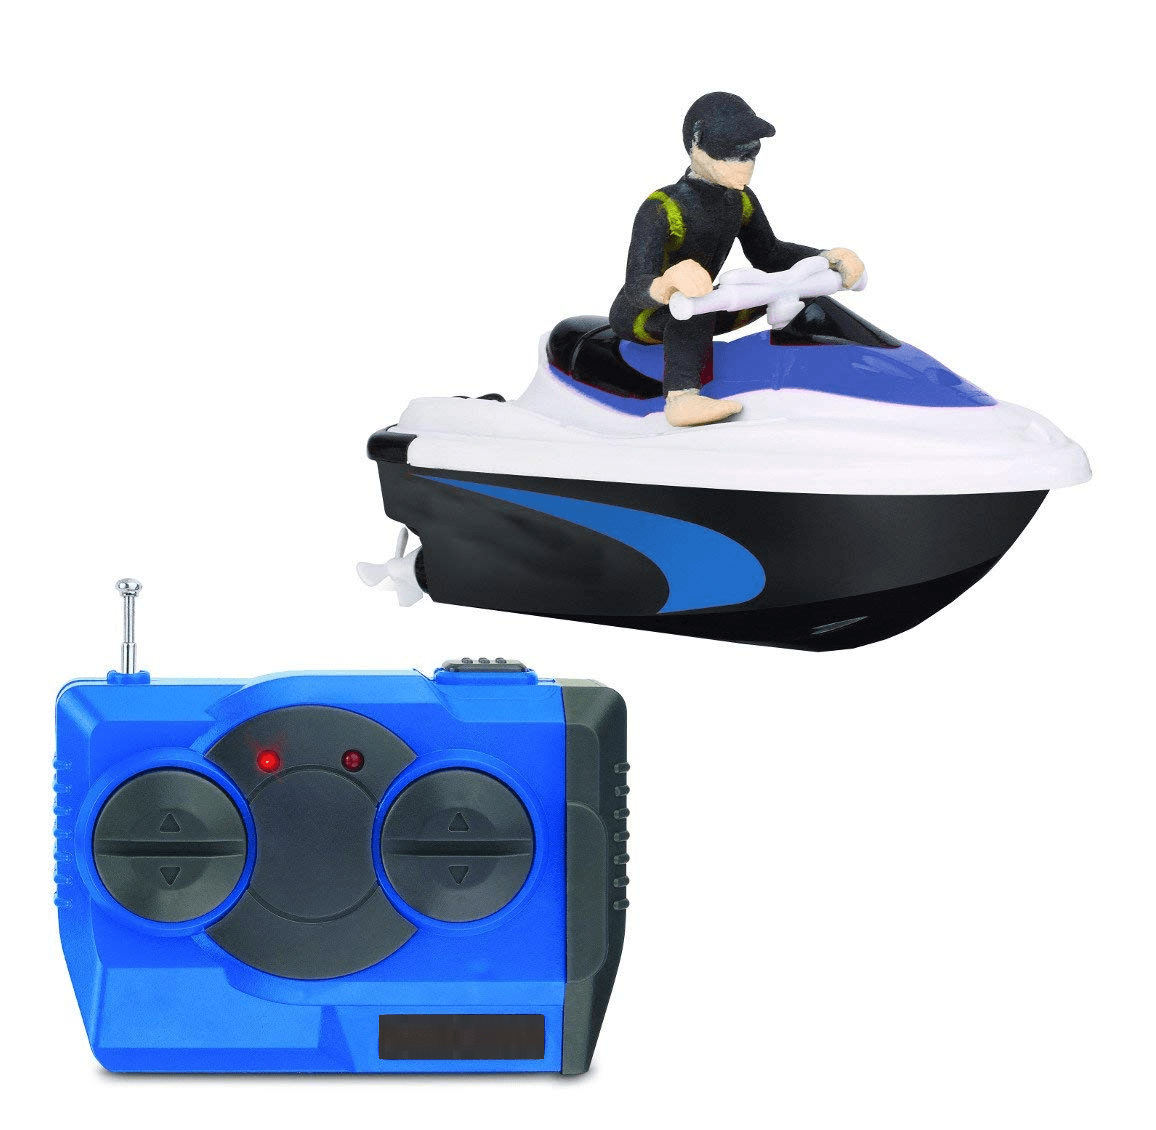 Remote Controlled (RC) Jet Ski Mini Electric Waverunner Toy Boats